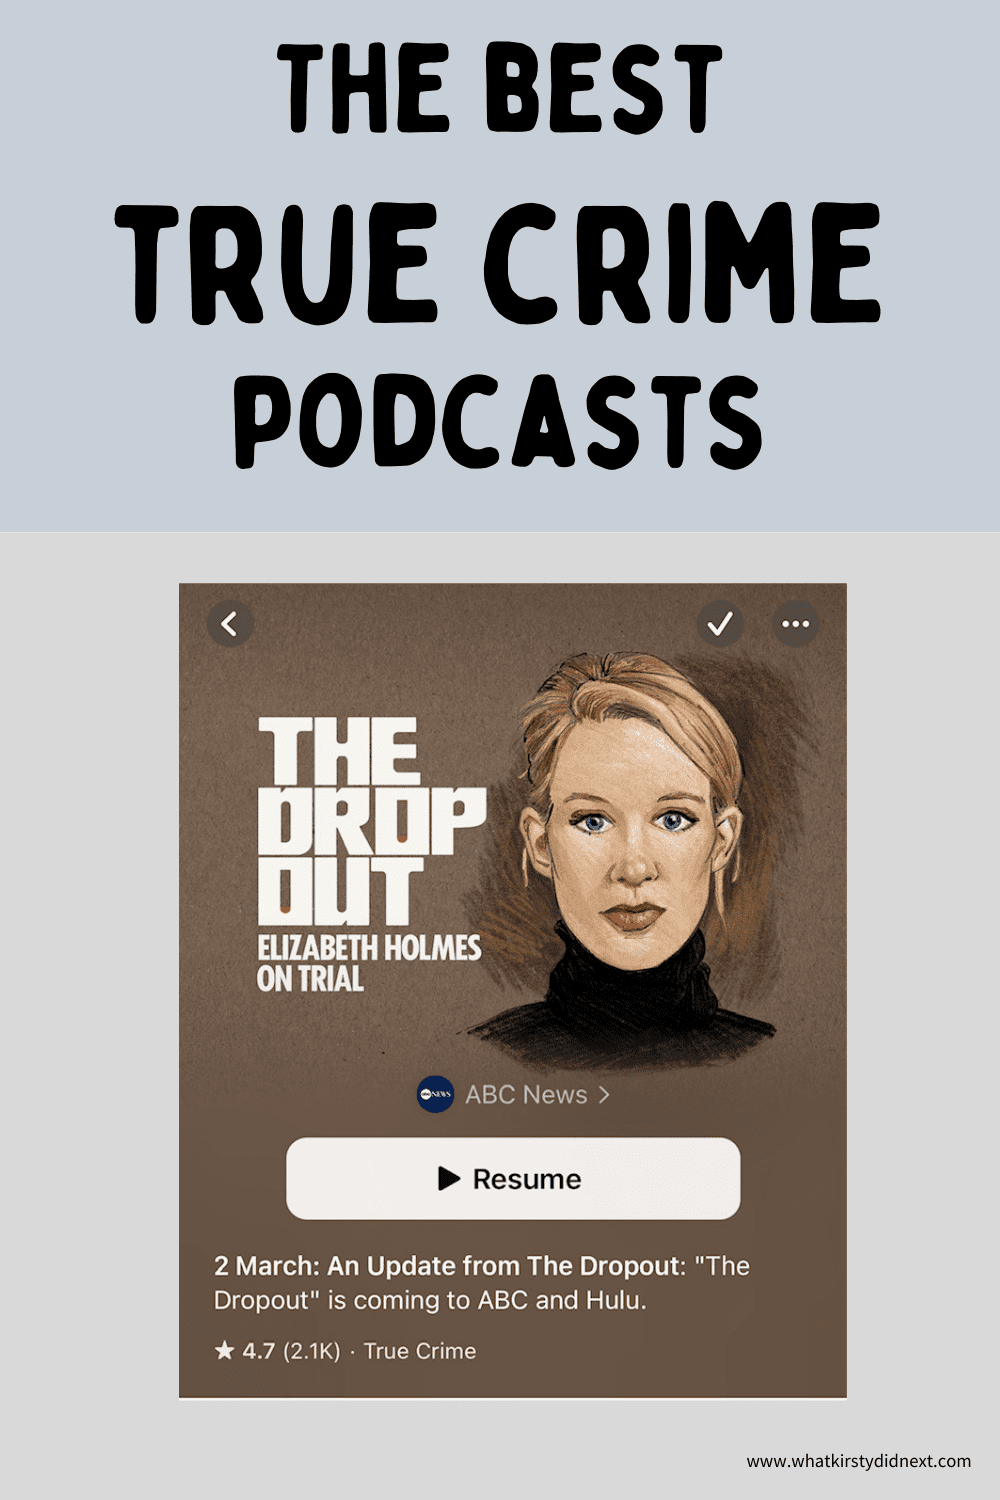 11 of the best true crime podcasts